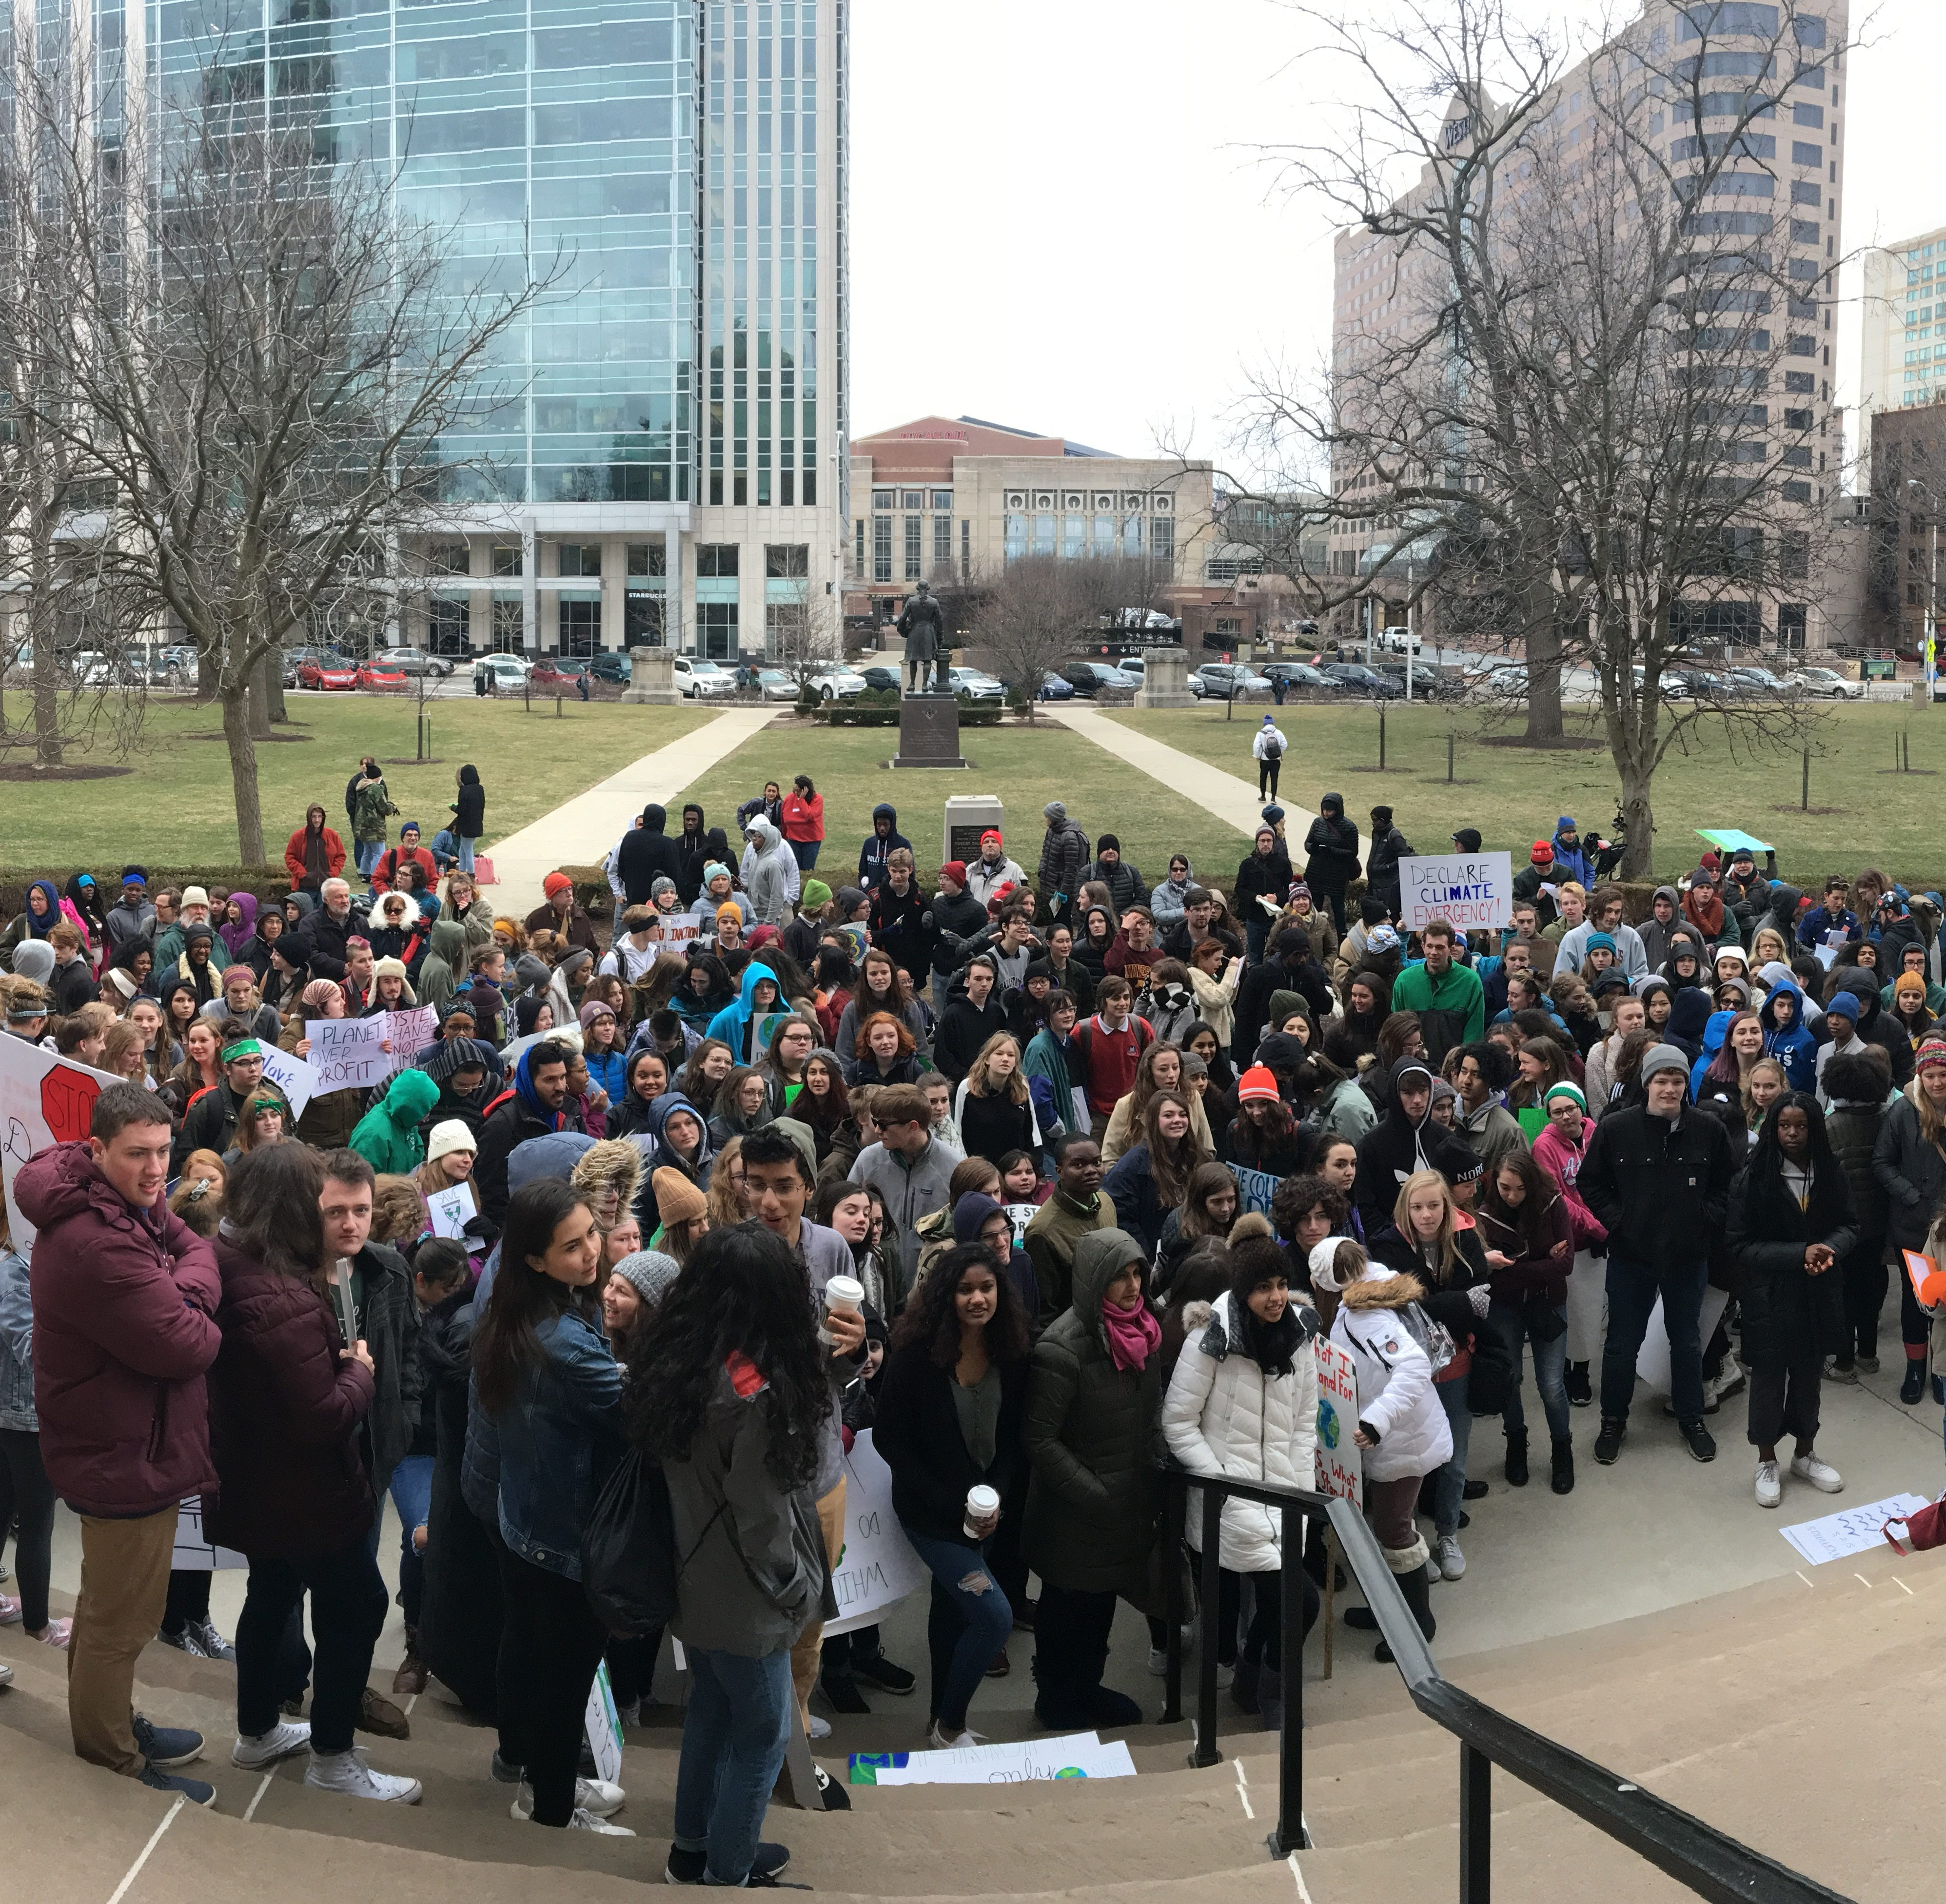 Students from across Indiana skipped school today to protest at the Statehouse